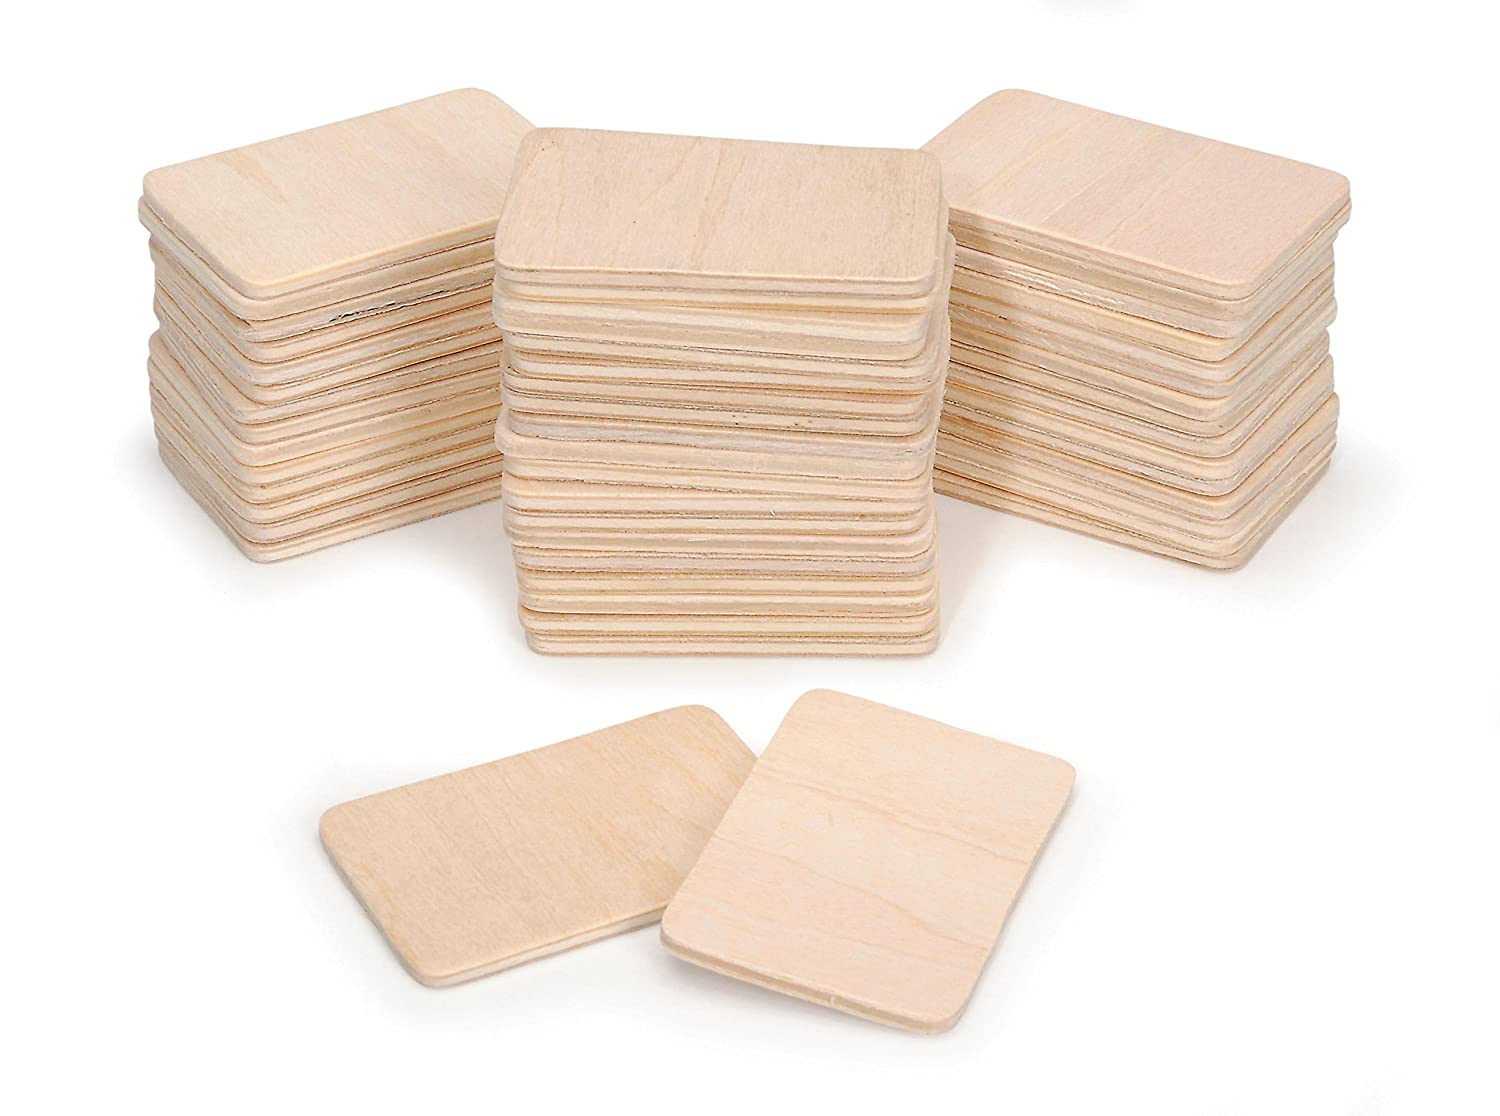 Darice Rectangle Wood Pieces: Unfinished, 2.08 x 1.37 Inches, 50-Pack 9192-60